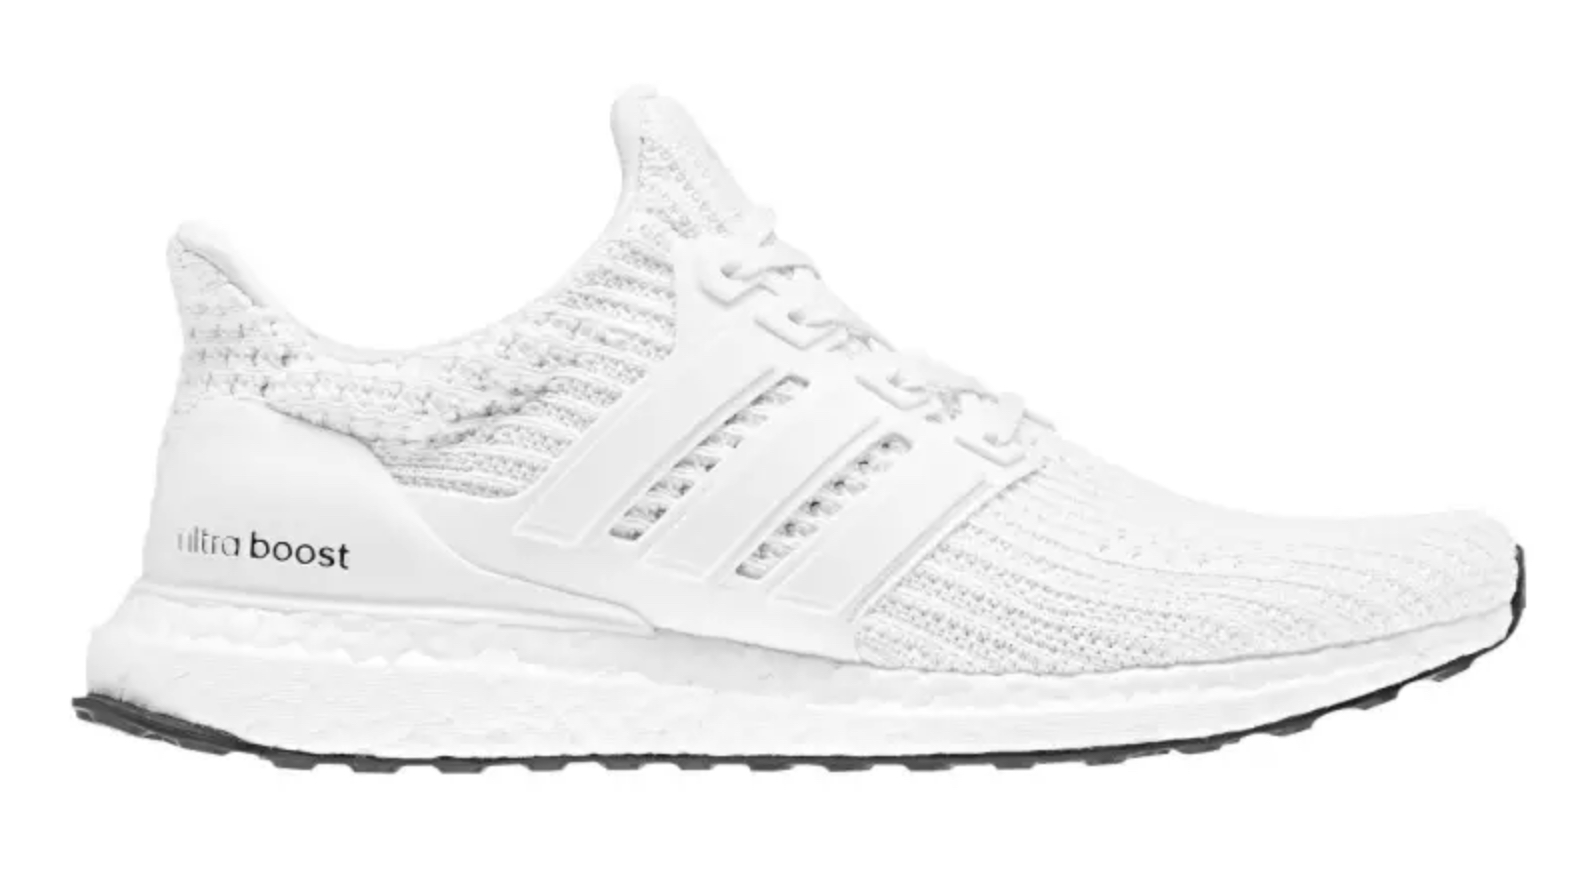 52f171a4d221a adidas ultra boost 4.0 white - WearTesters